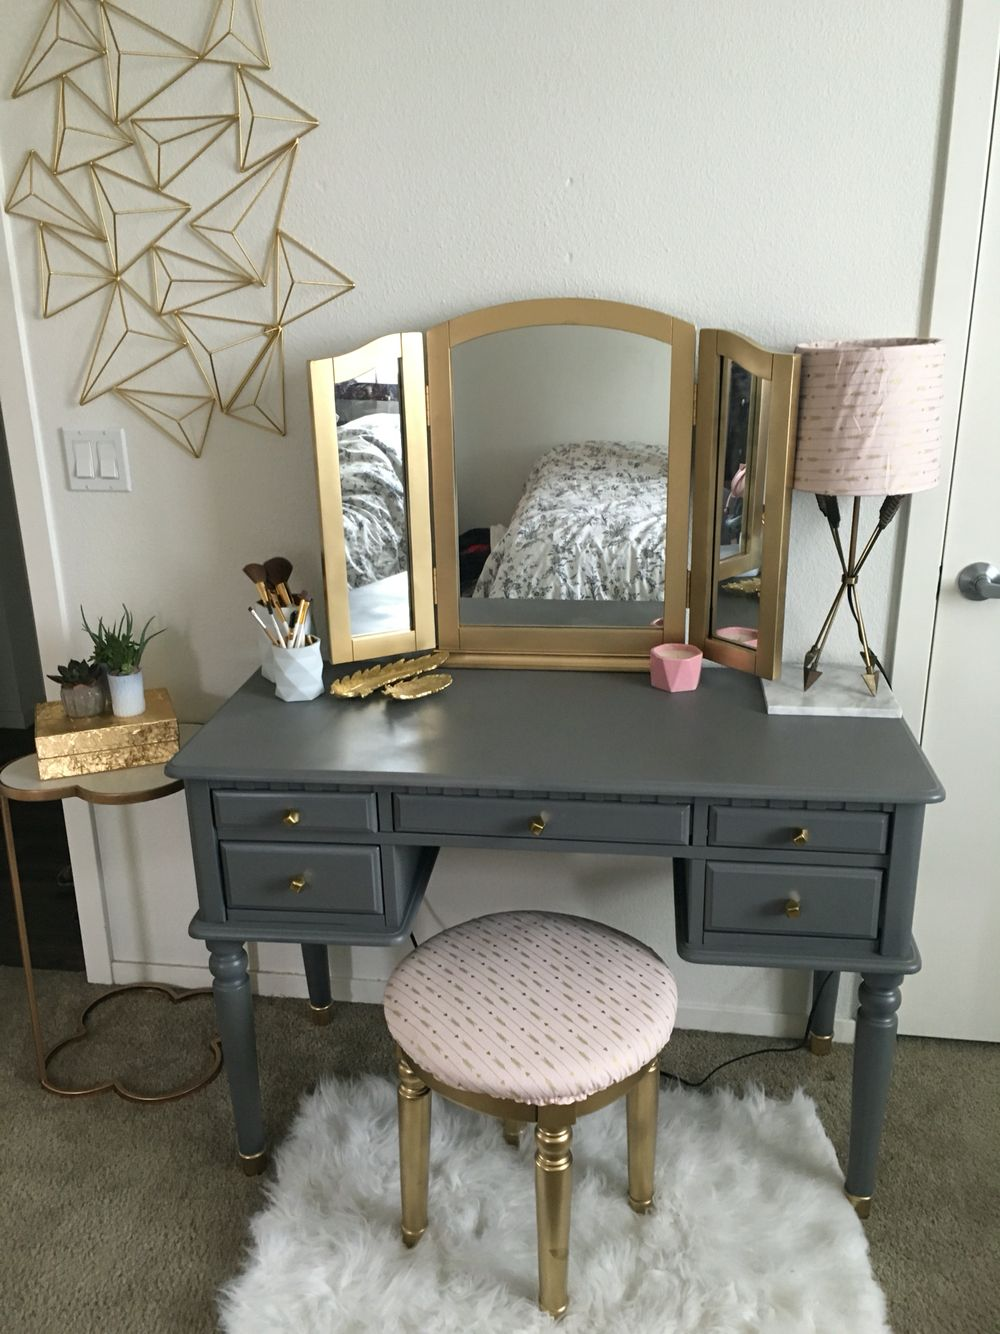 Diy vanity make over spray painted my old black vanity matte grey